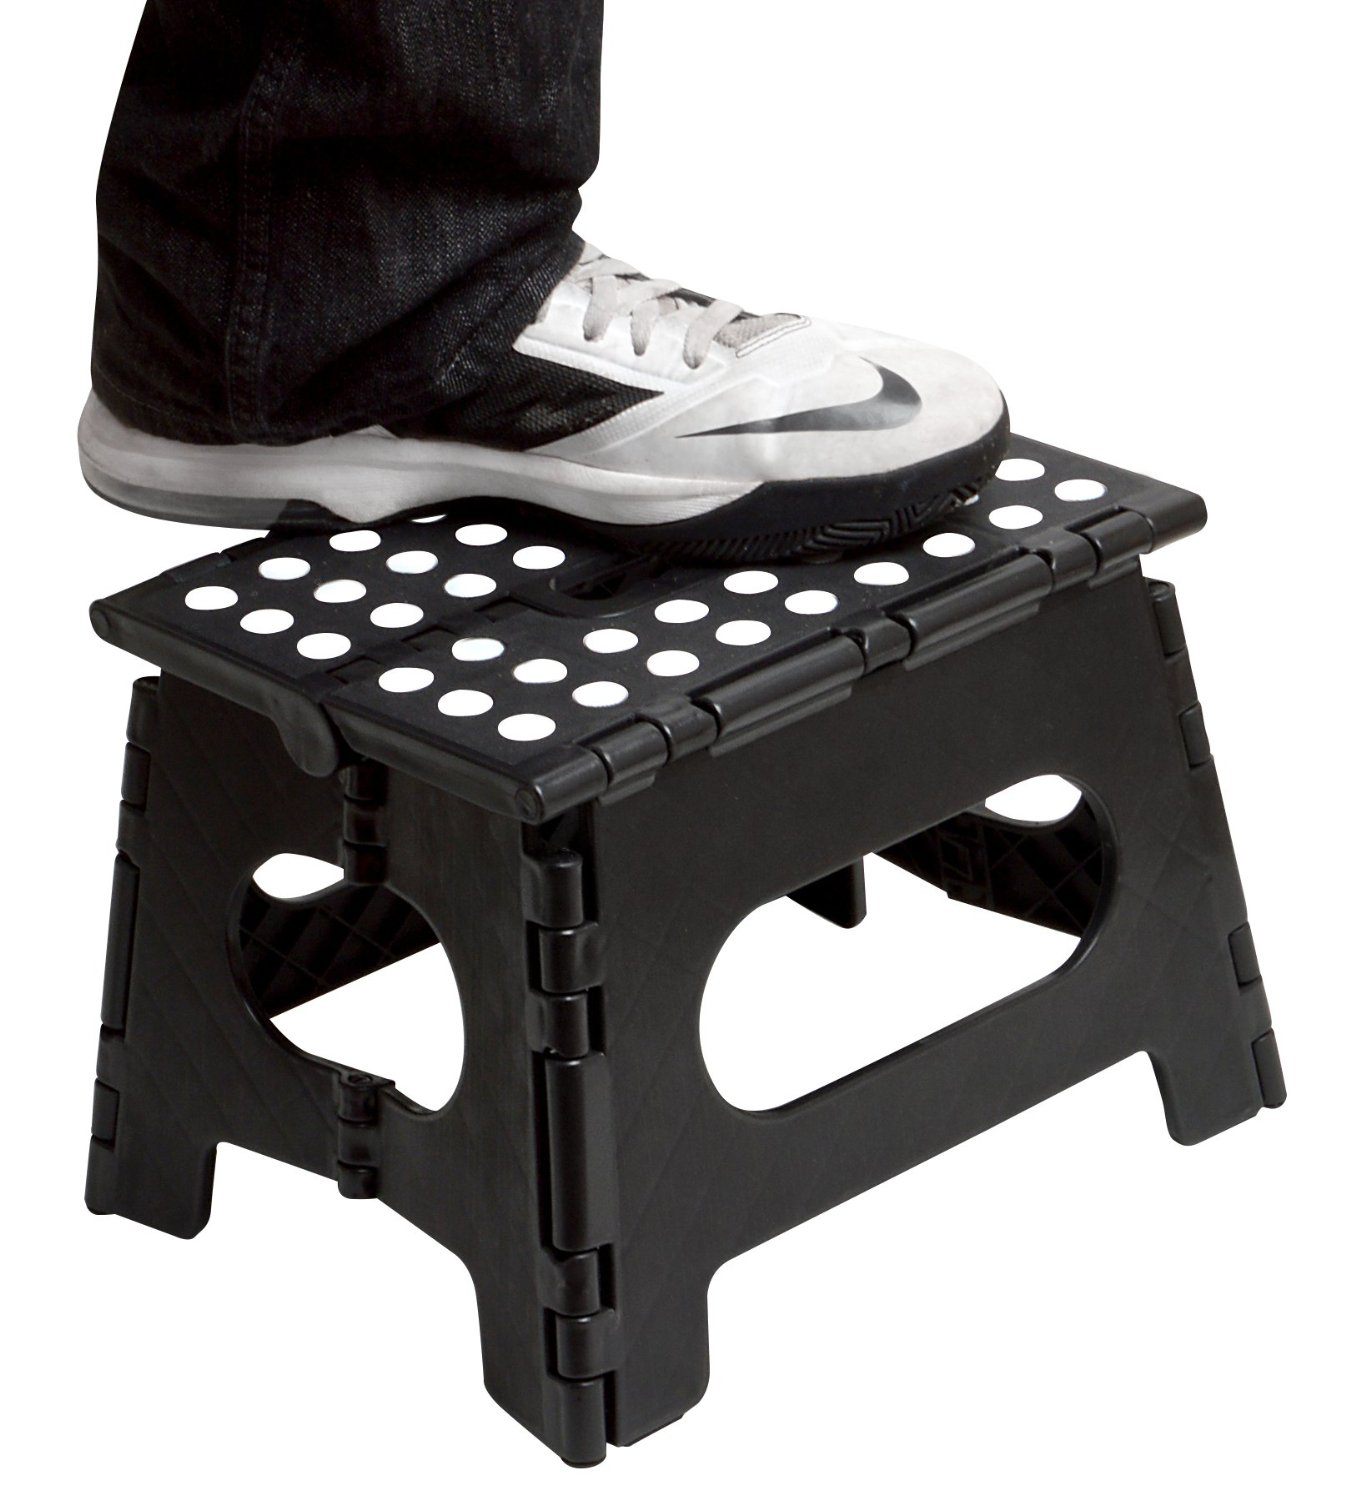 Step Stools For Adults ~ Folding stepping stools for adults thesteppingstool